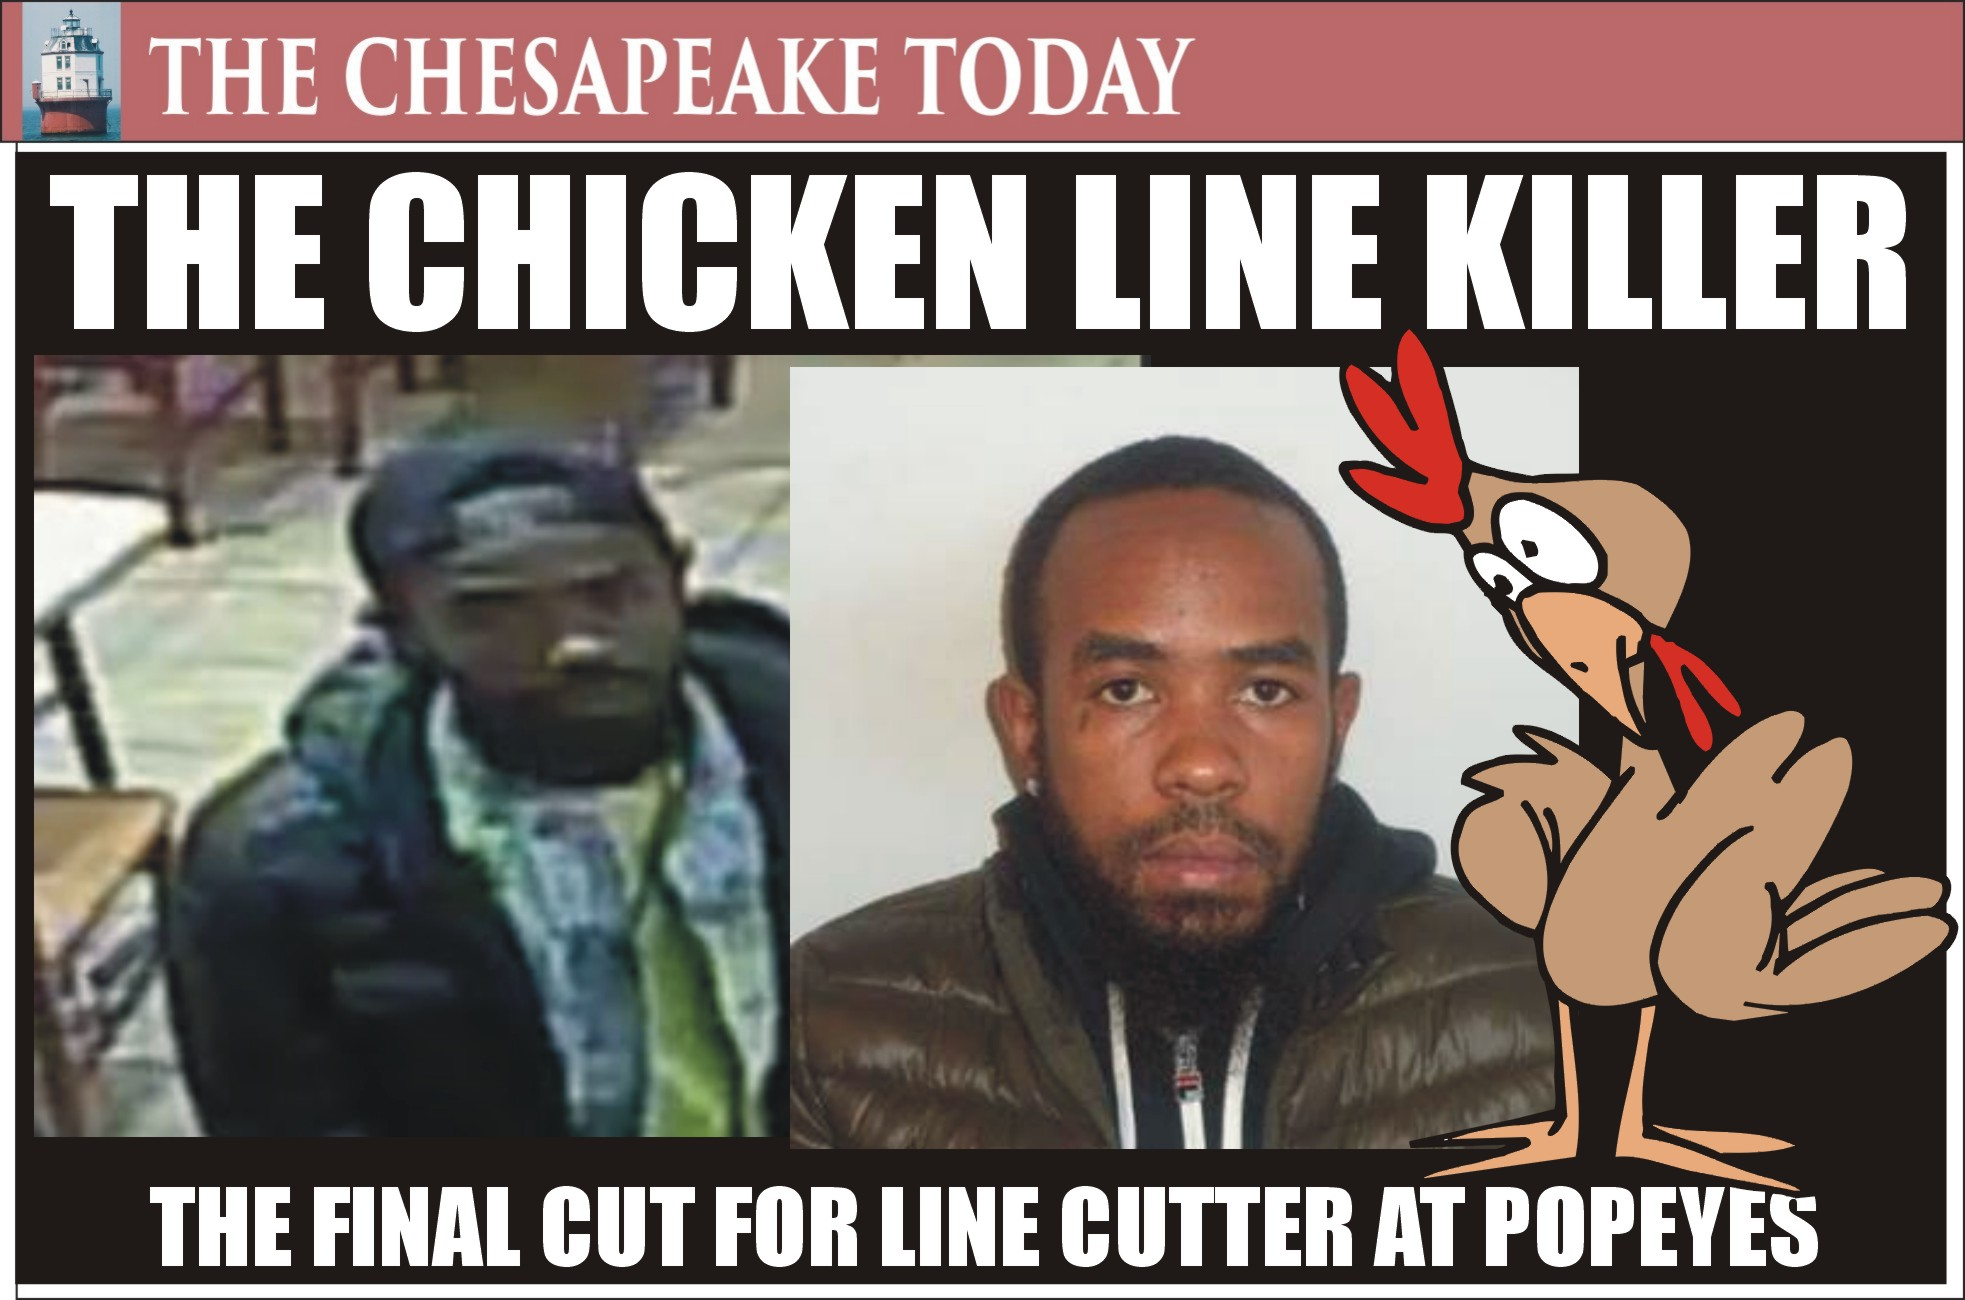 MURDER USA: Chicken sandwich line cutter Kevin Davis got the final cut from the accused killer, Ricoh McClain now wanted by cops